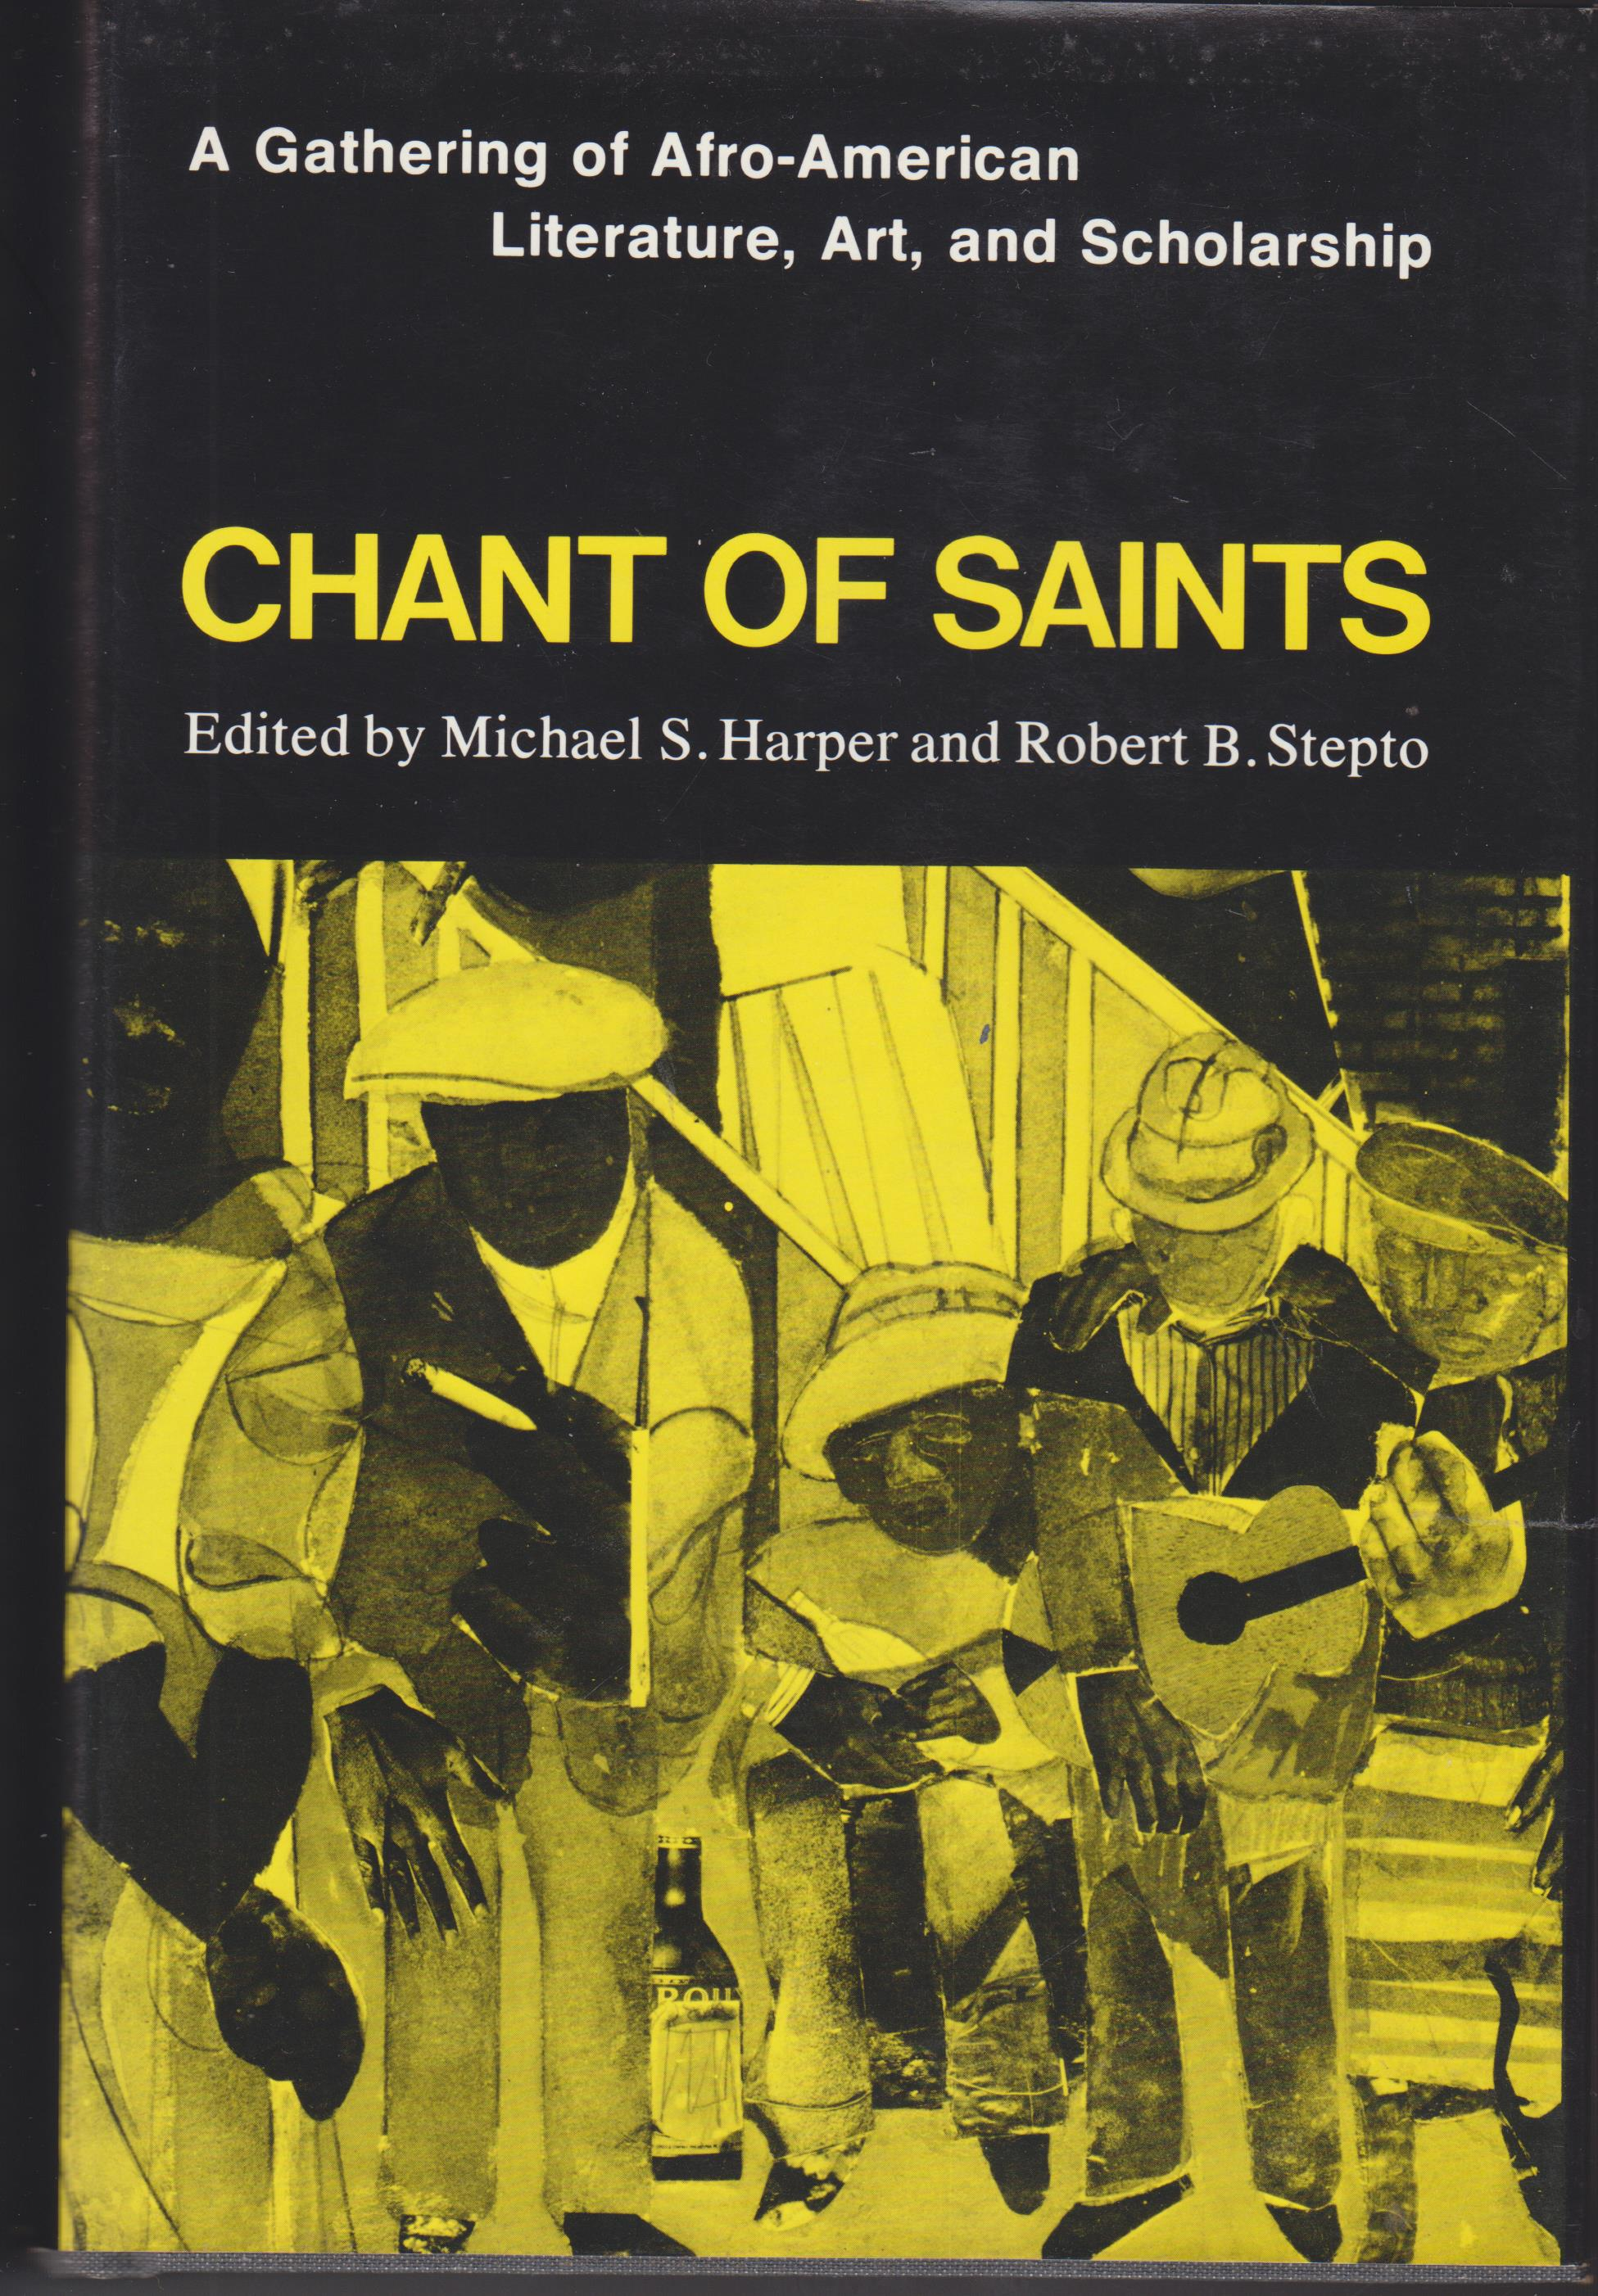 Image for Chant of Saints. A Gathering of Afro-American Literature, Art, and Scholarship